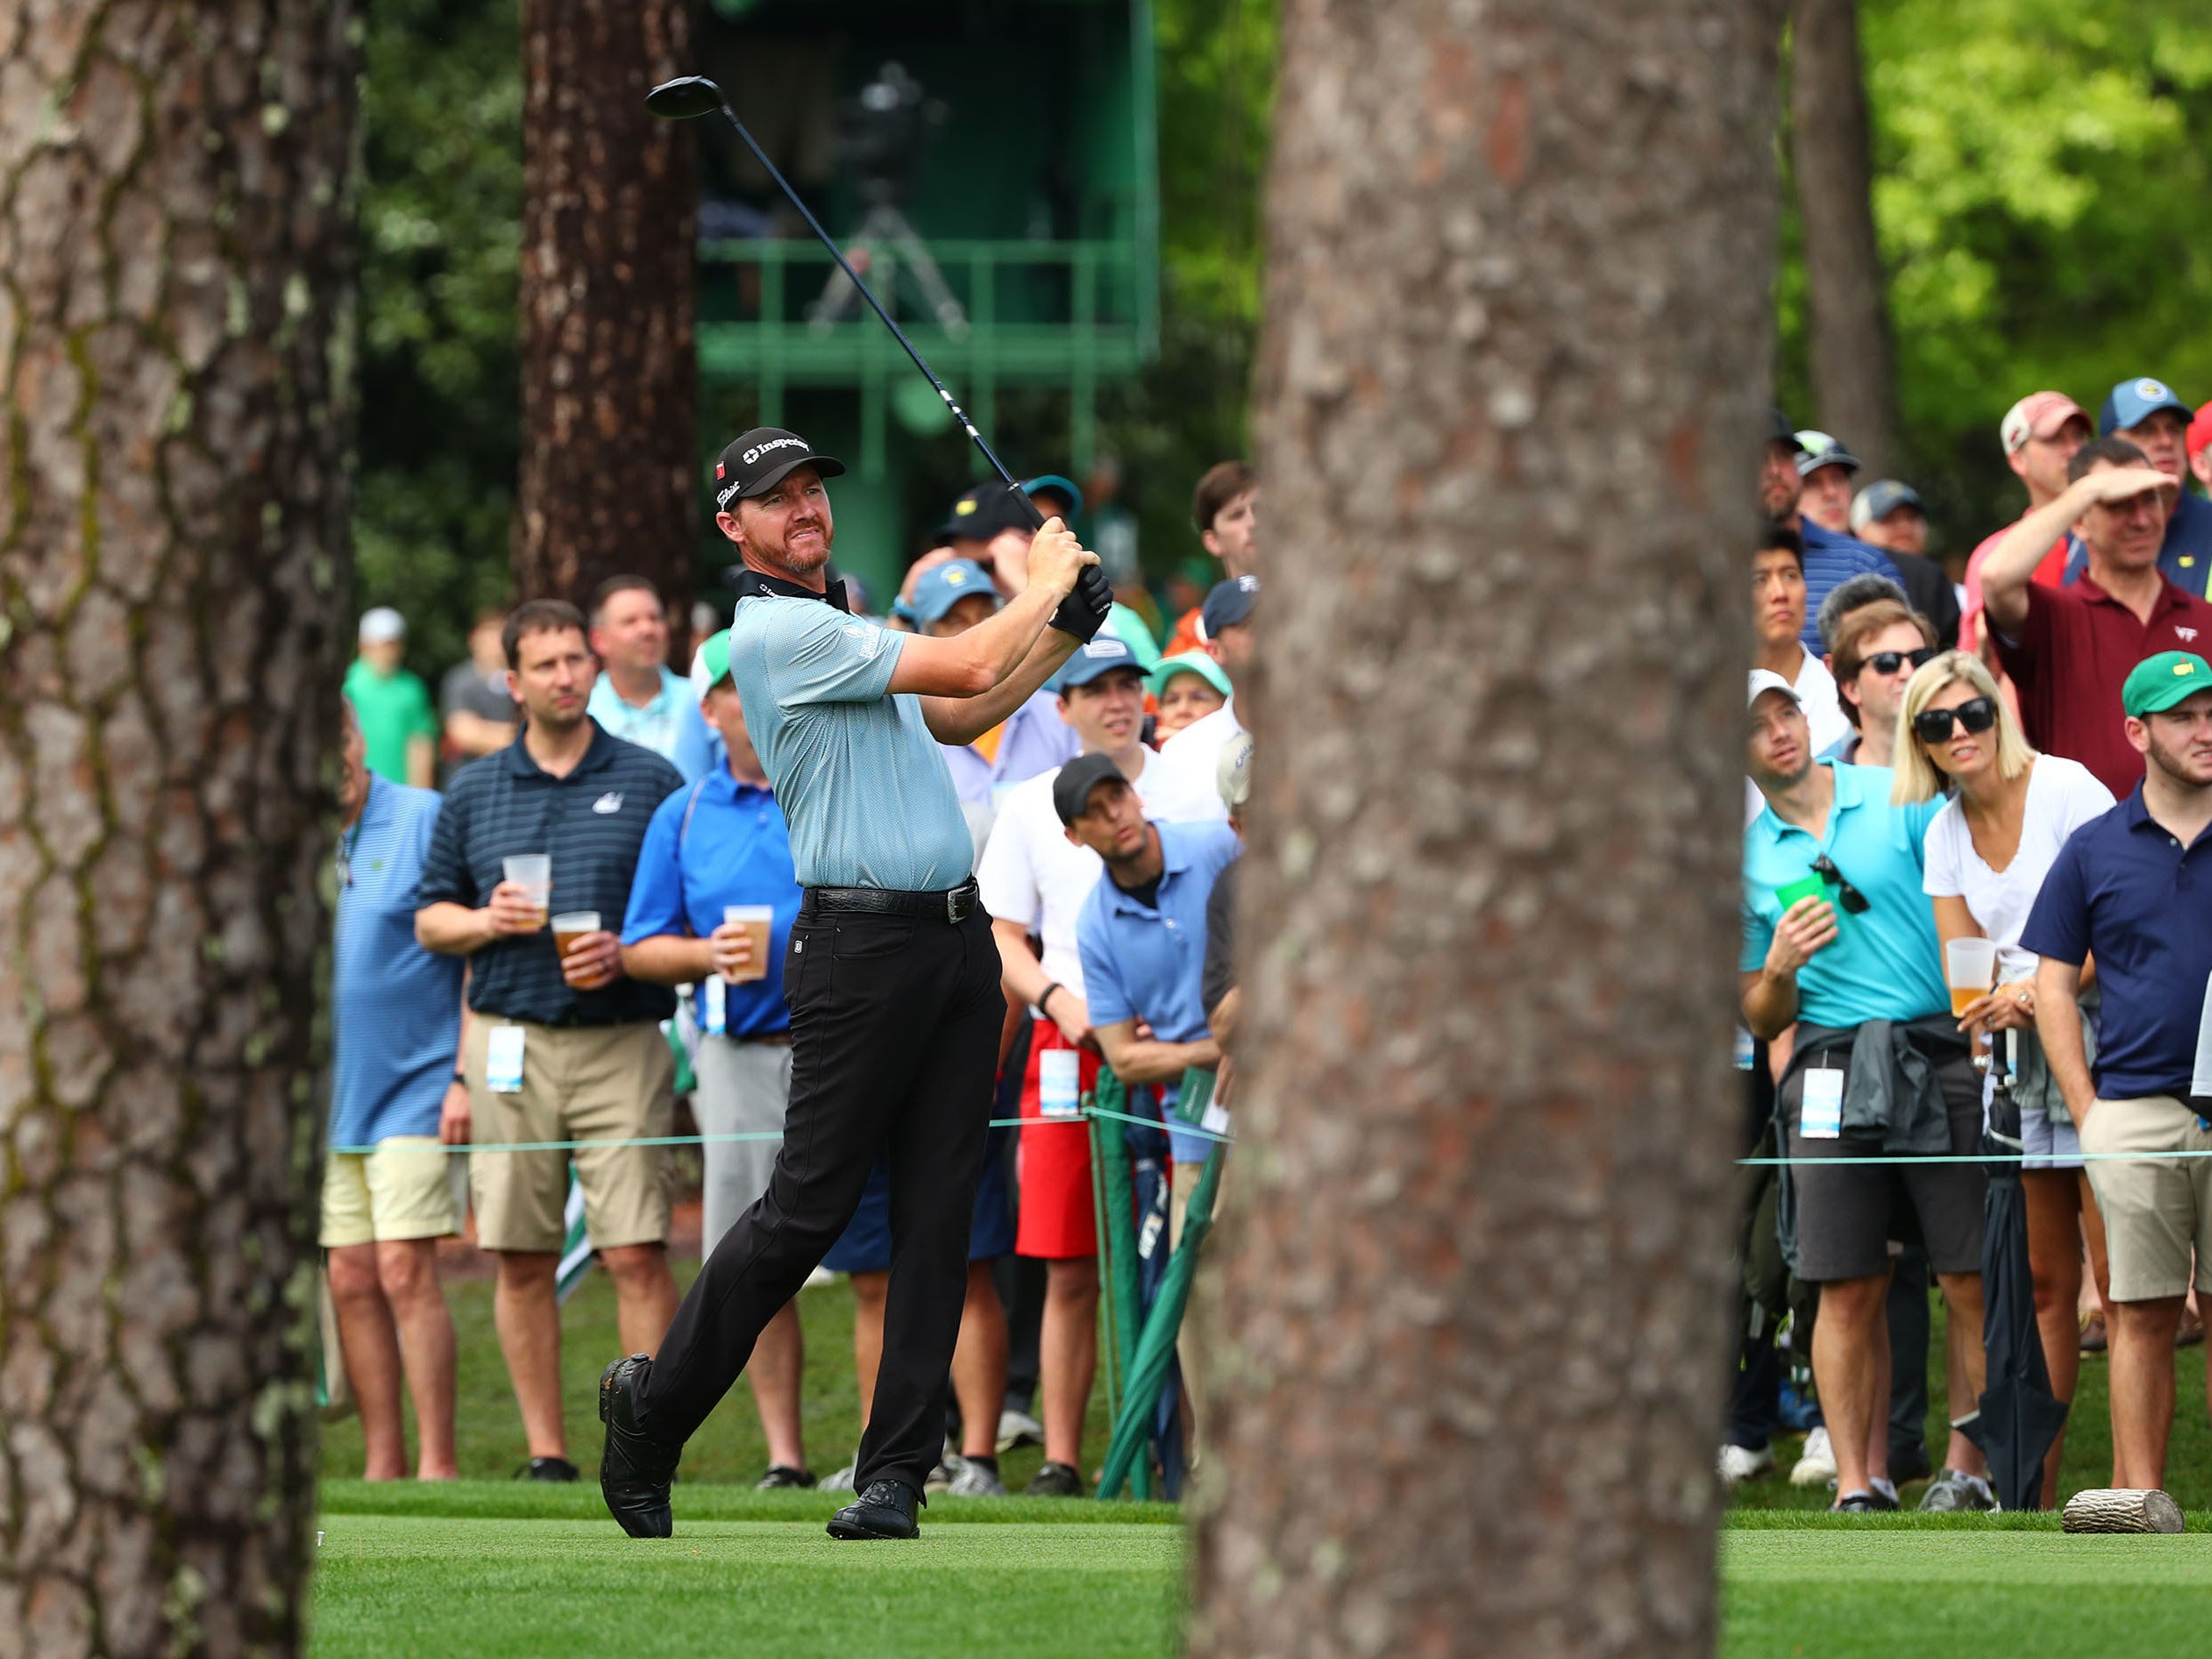 Apr 9, 2019; Augusta, GA, USA; Jimmy Walker hits his drive on the 17th hole during a practice round for The Masters golf tournament at Augusta National Golf Club. Mandatory Credit: Rob Schumacher-USA TODAY Sports